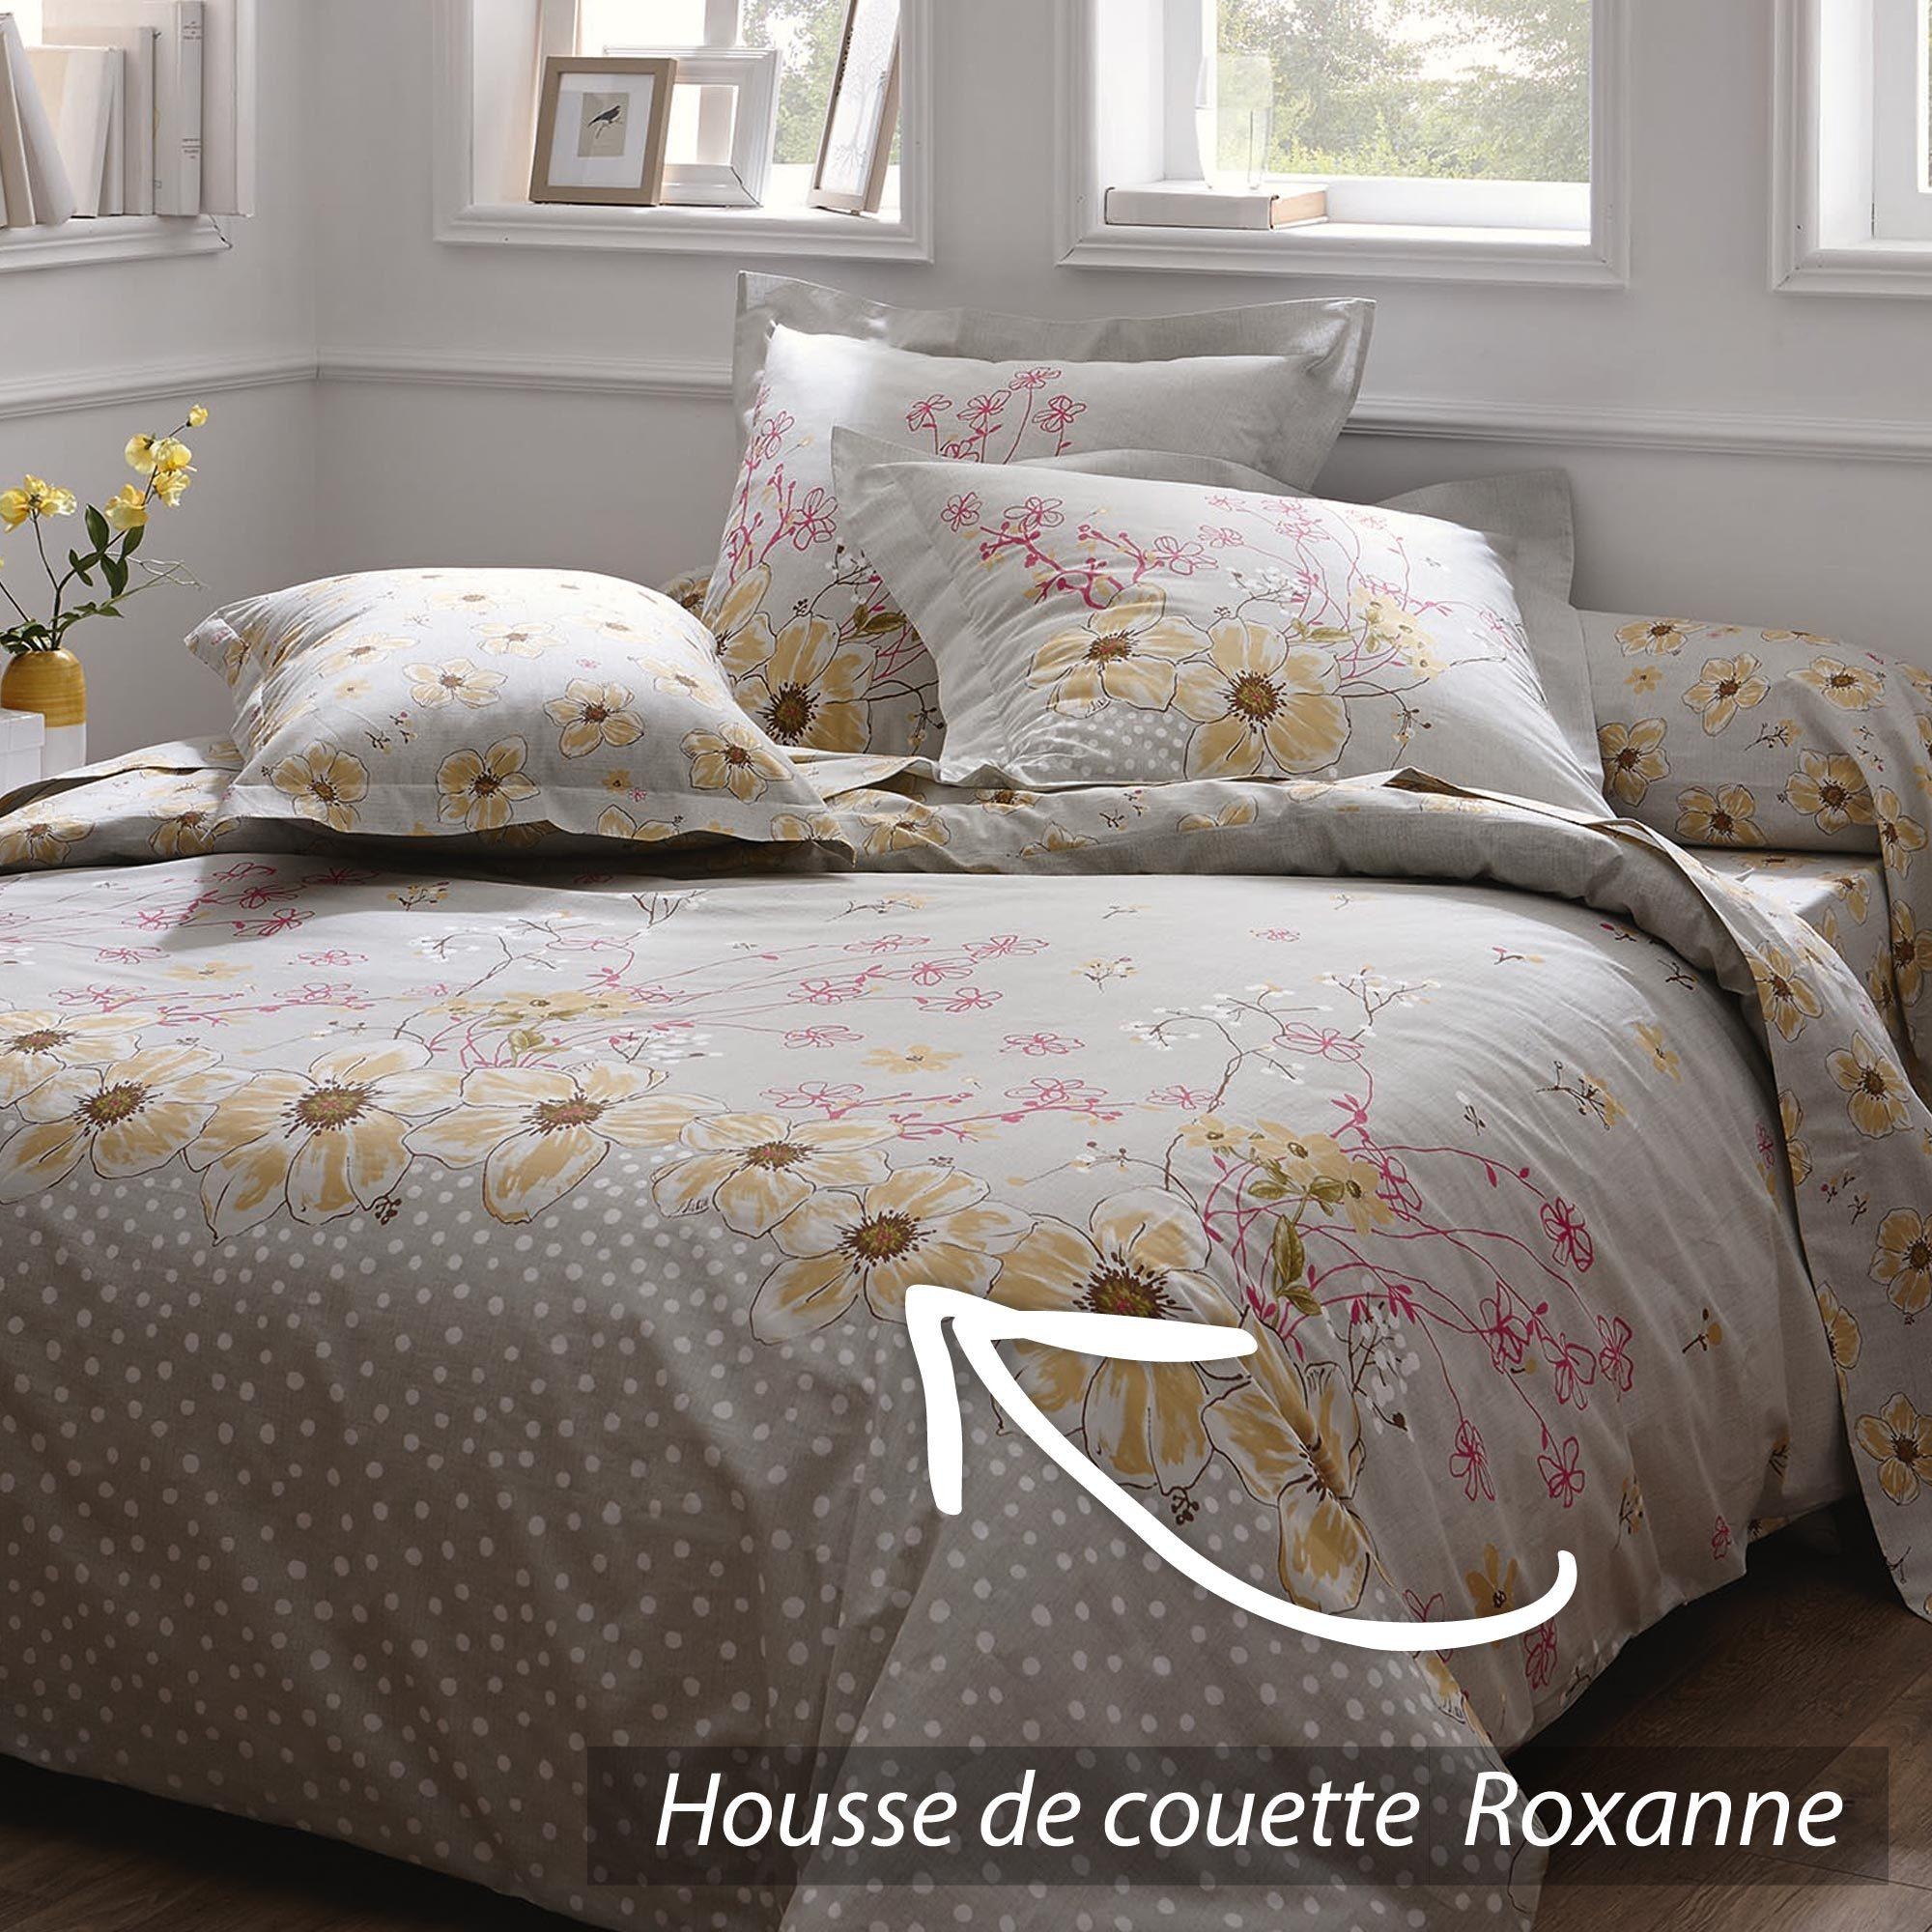 housse de couette 200x200 cm 100 coton roxanne destockage ebay. Black Bedroom Furniture Sets. Home Design Ideas